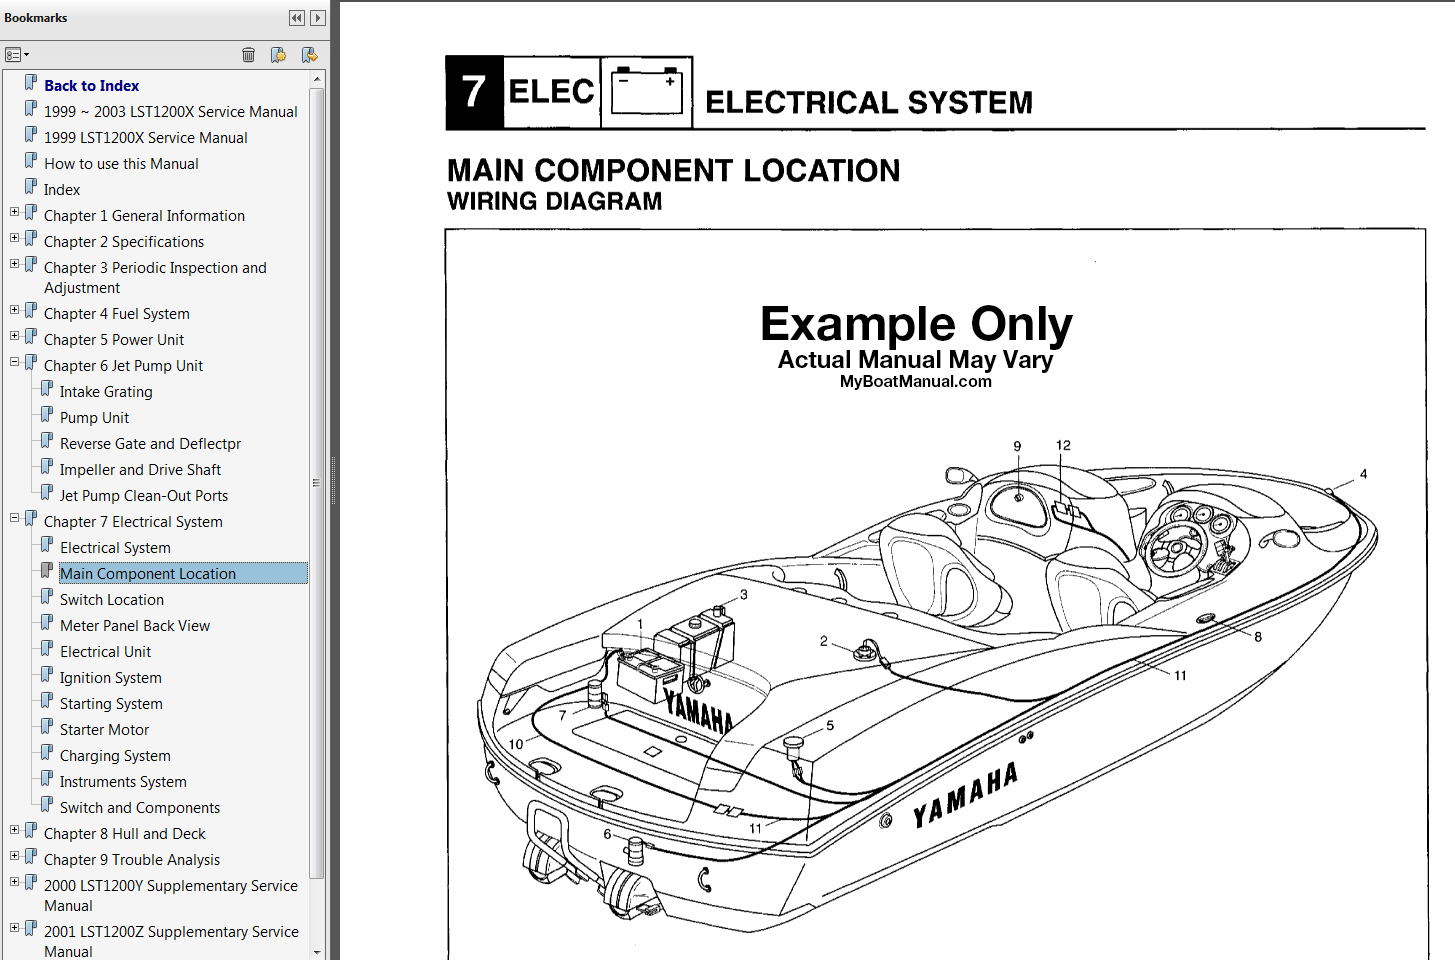 1999 ar210 boat service manual